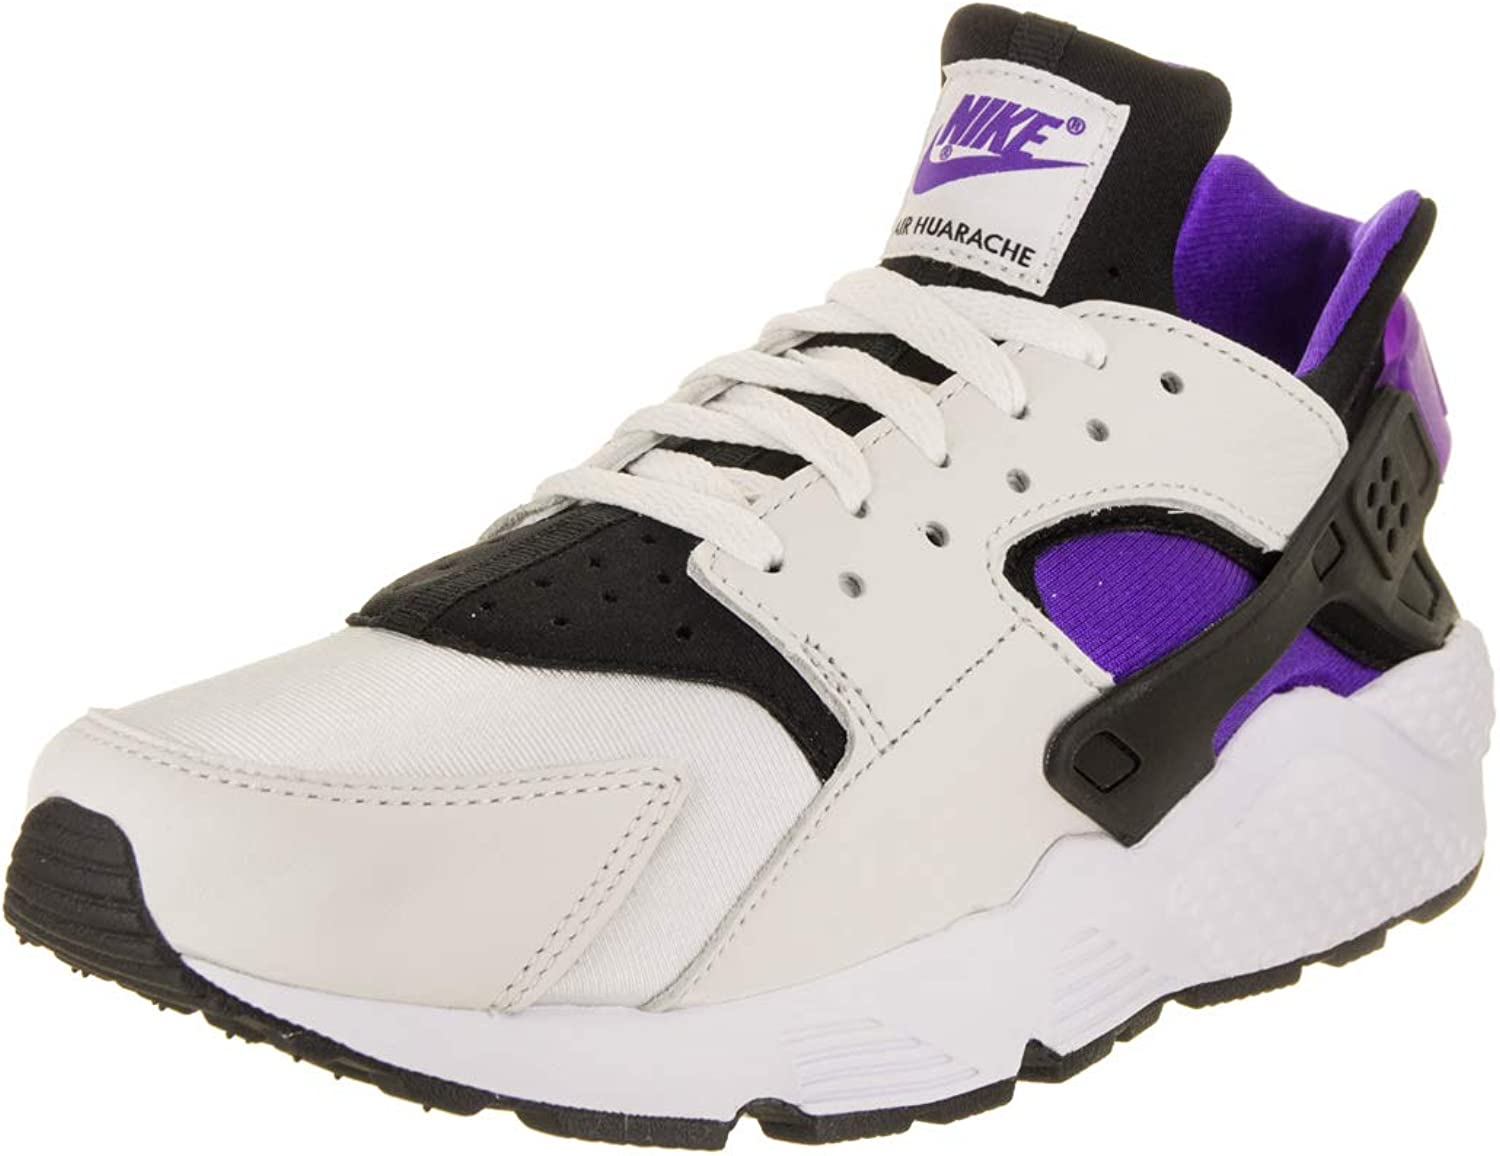 Nike AIR Huarache Run '91 QS 'lila Punch' - AH8049-001 B079QGWSCP Gutes Design